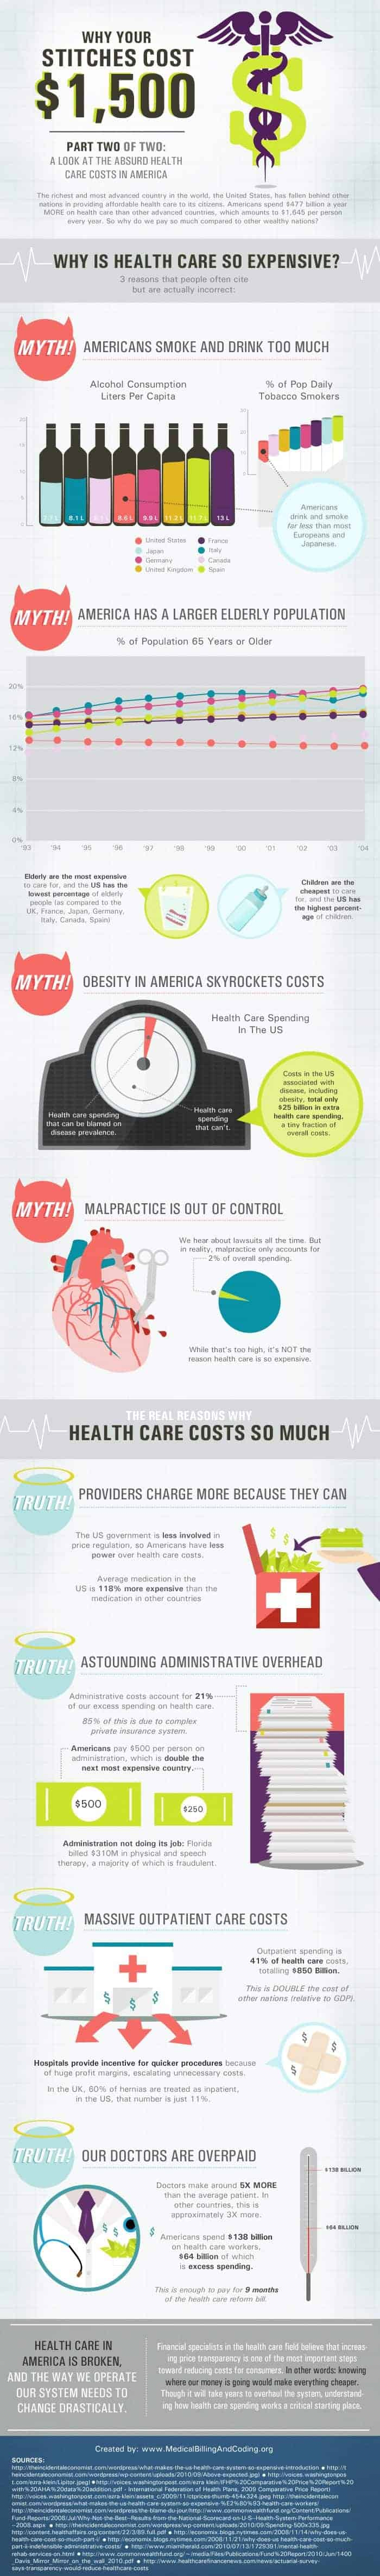 Healthcare Costs in America